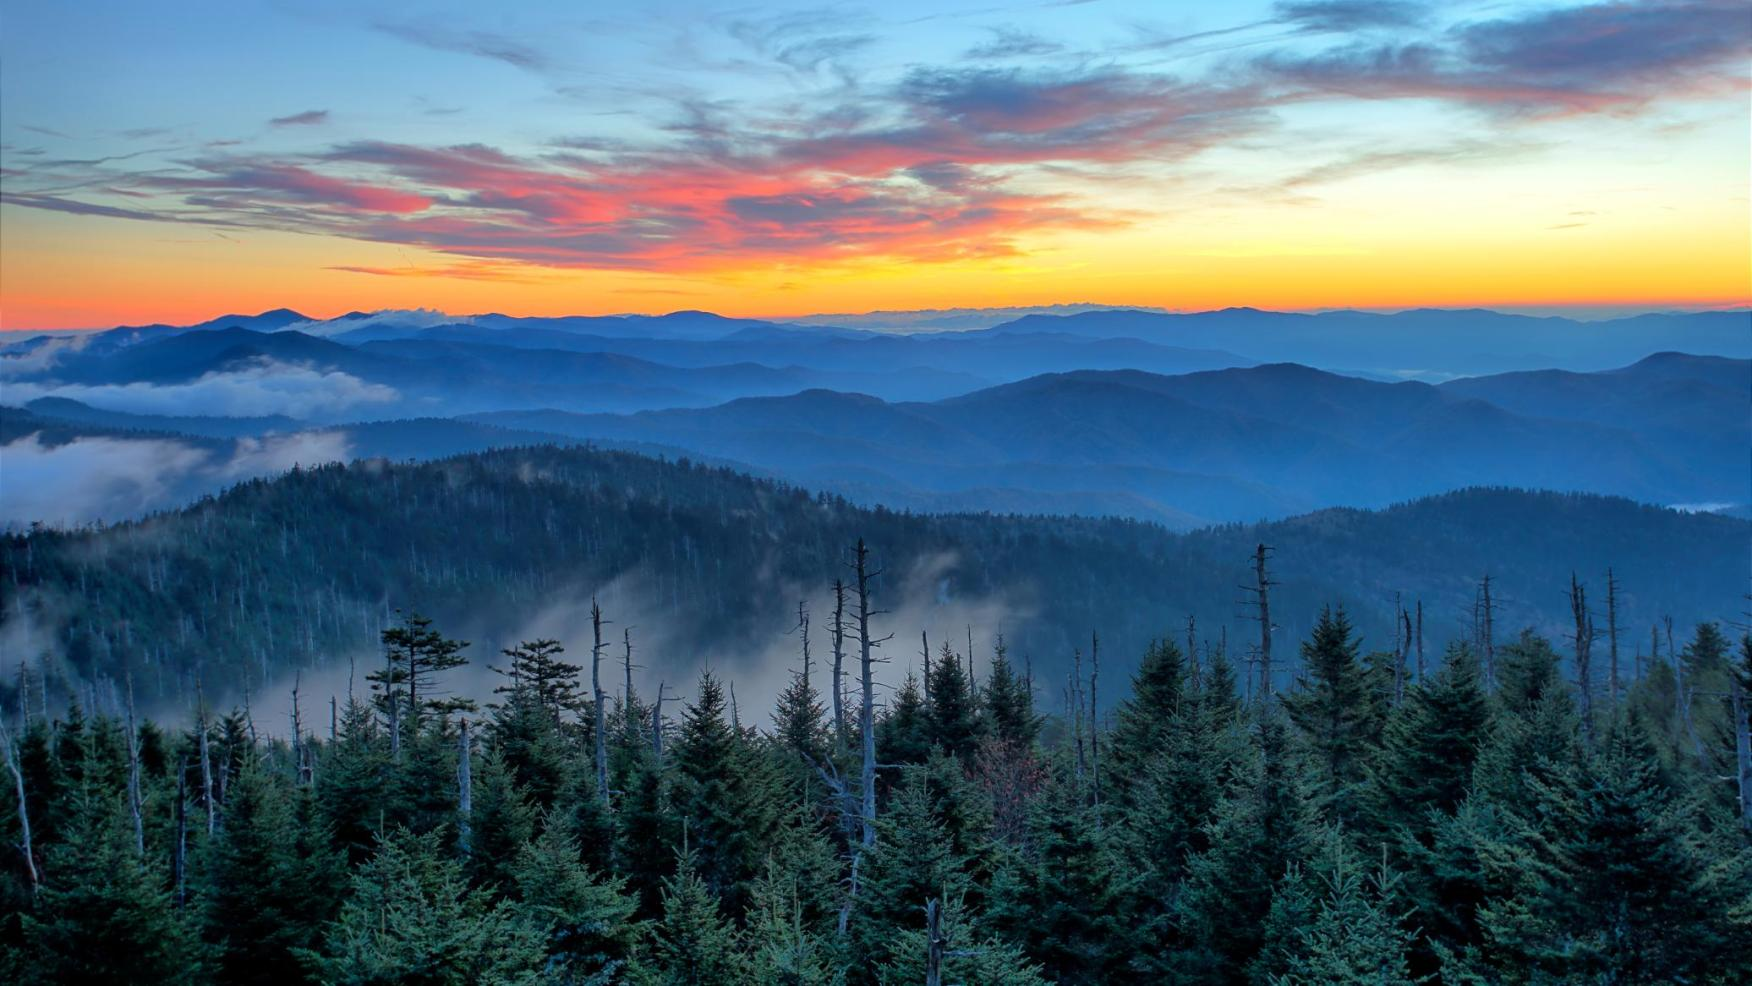 Your RV Trip to the Great Smoky Mountains National Park